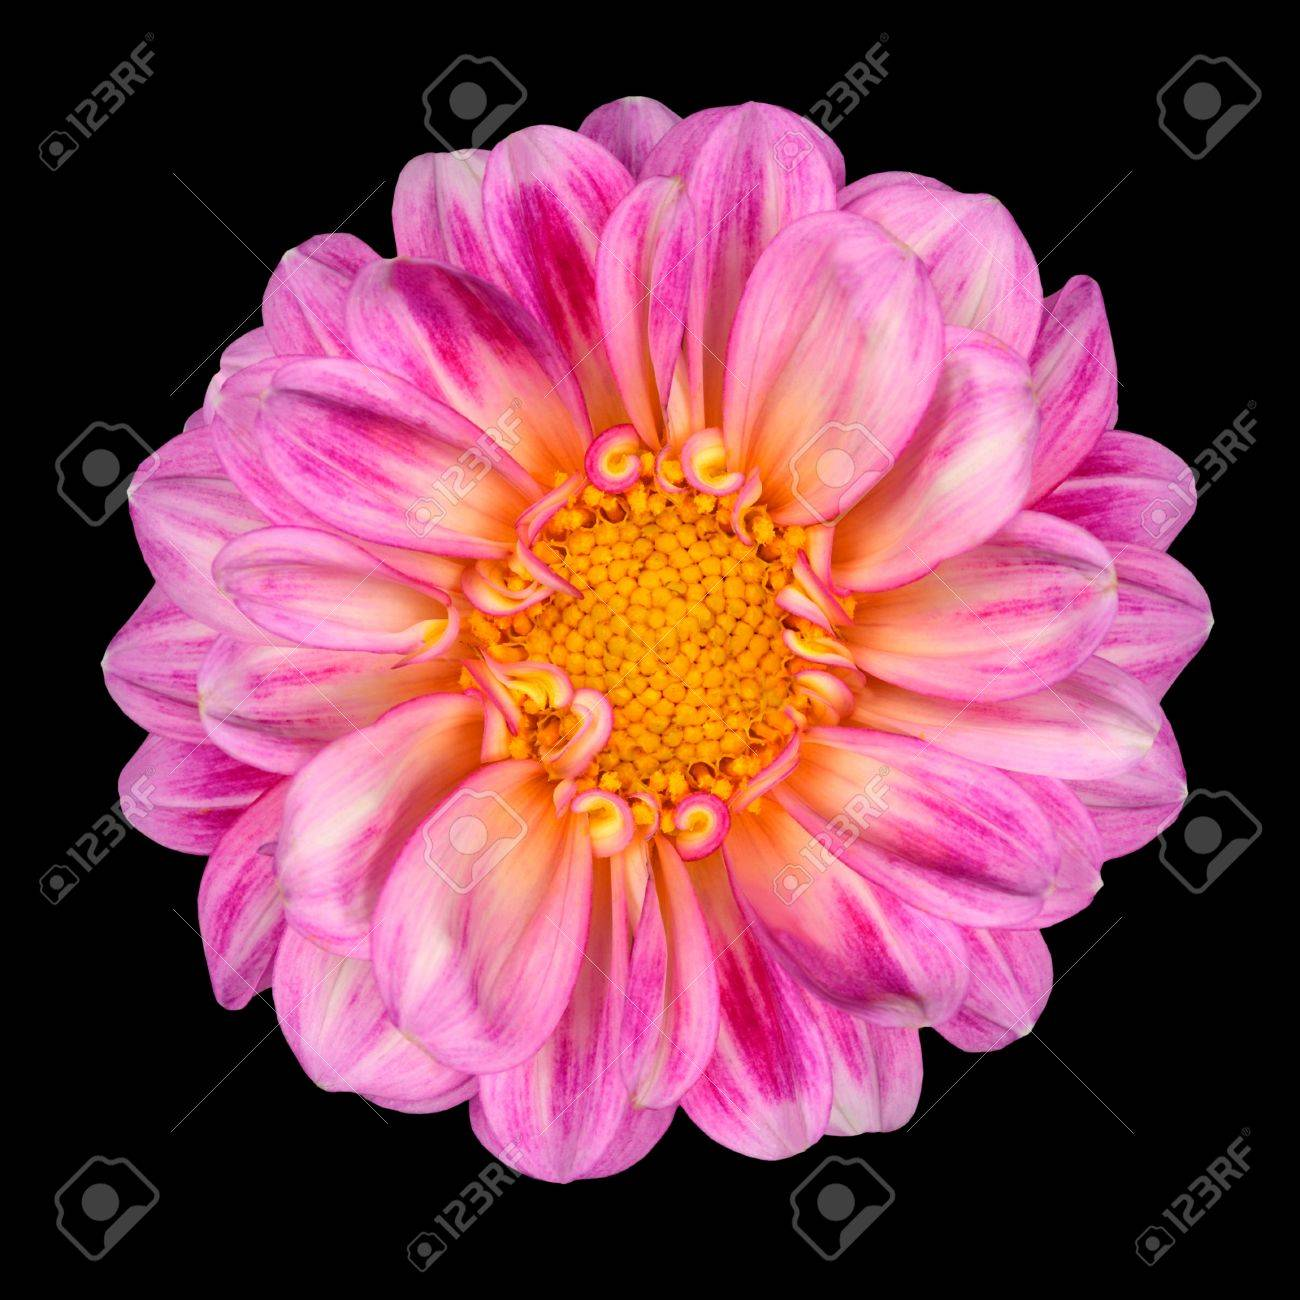 Dahlia Flower With Pink White Petals And Yellow Center Isolated